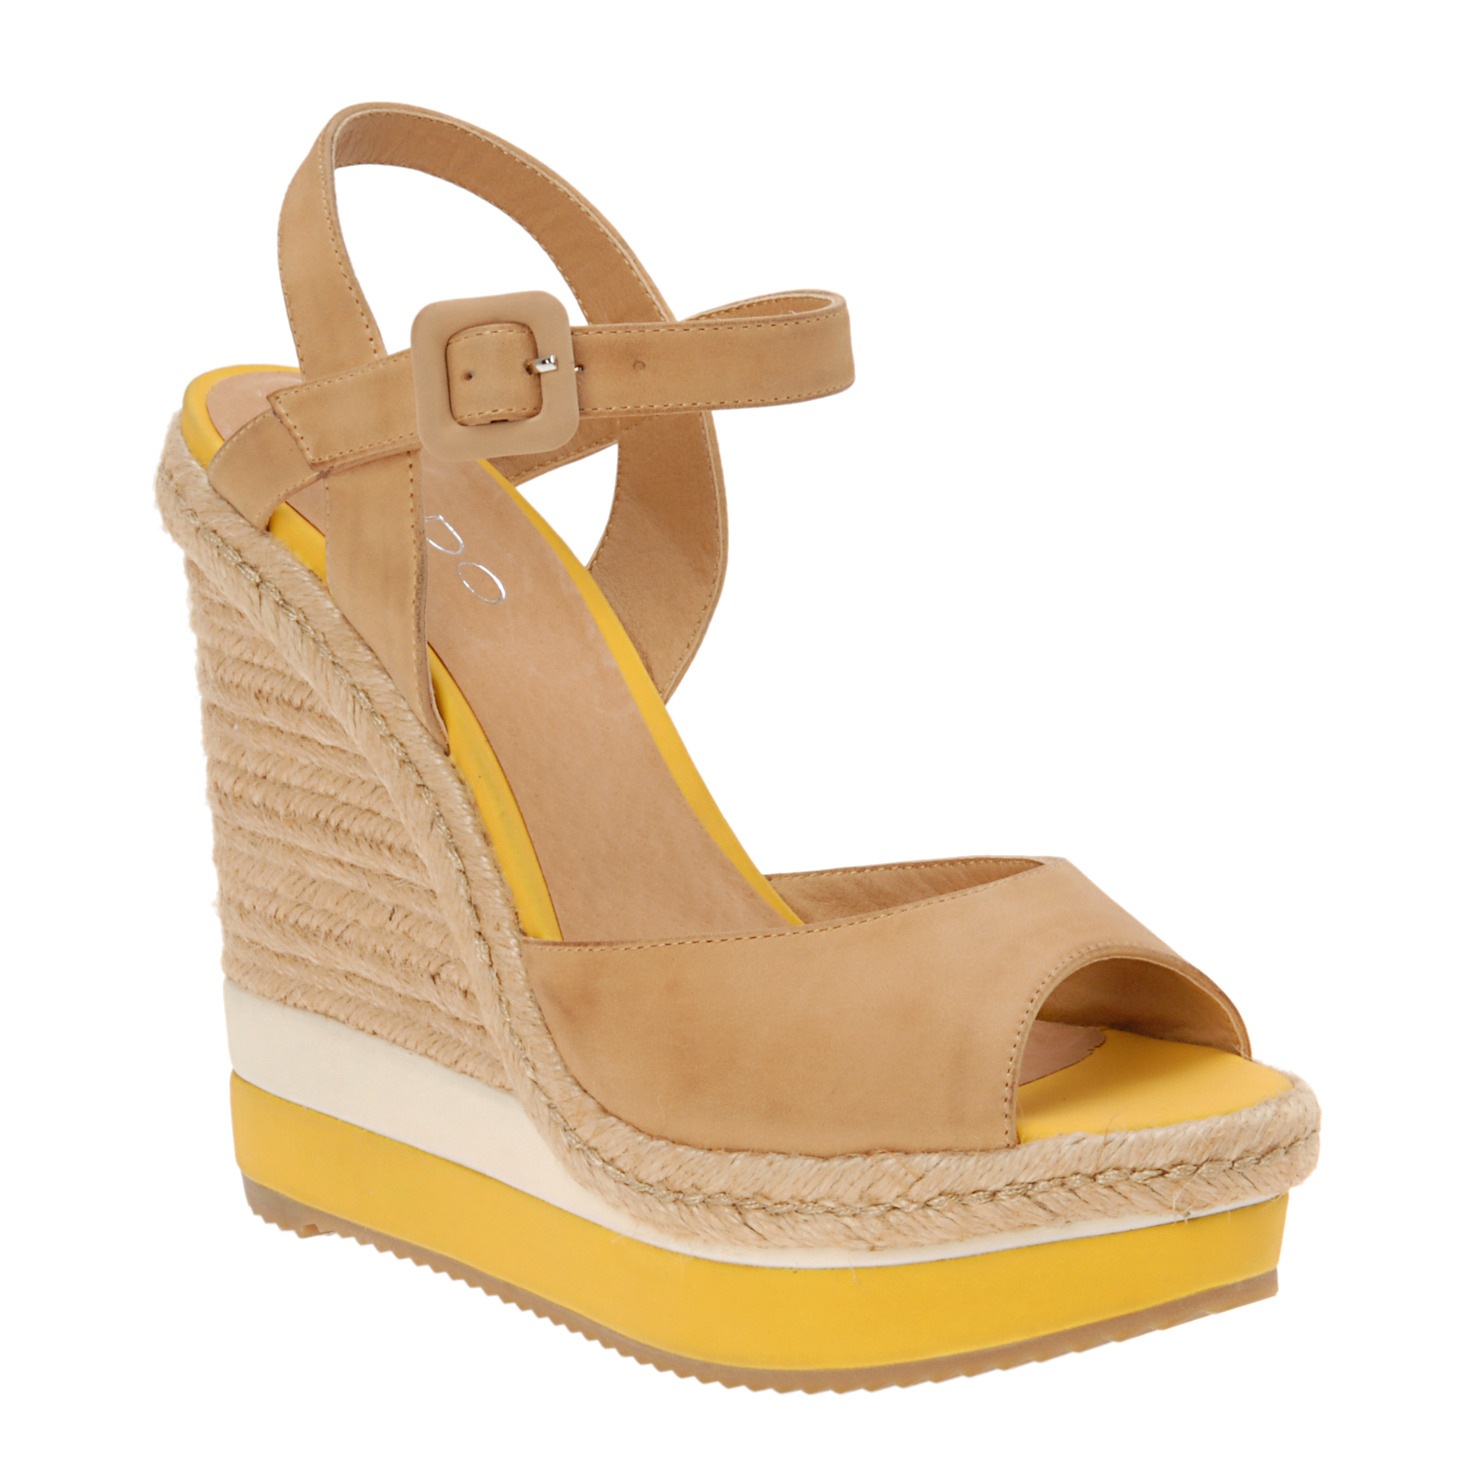 Aldo Shoes Wedges